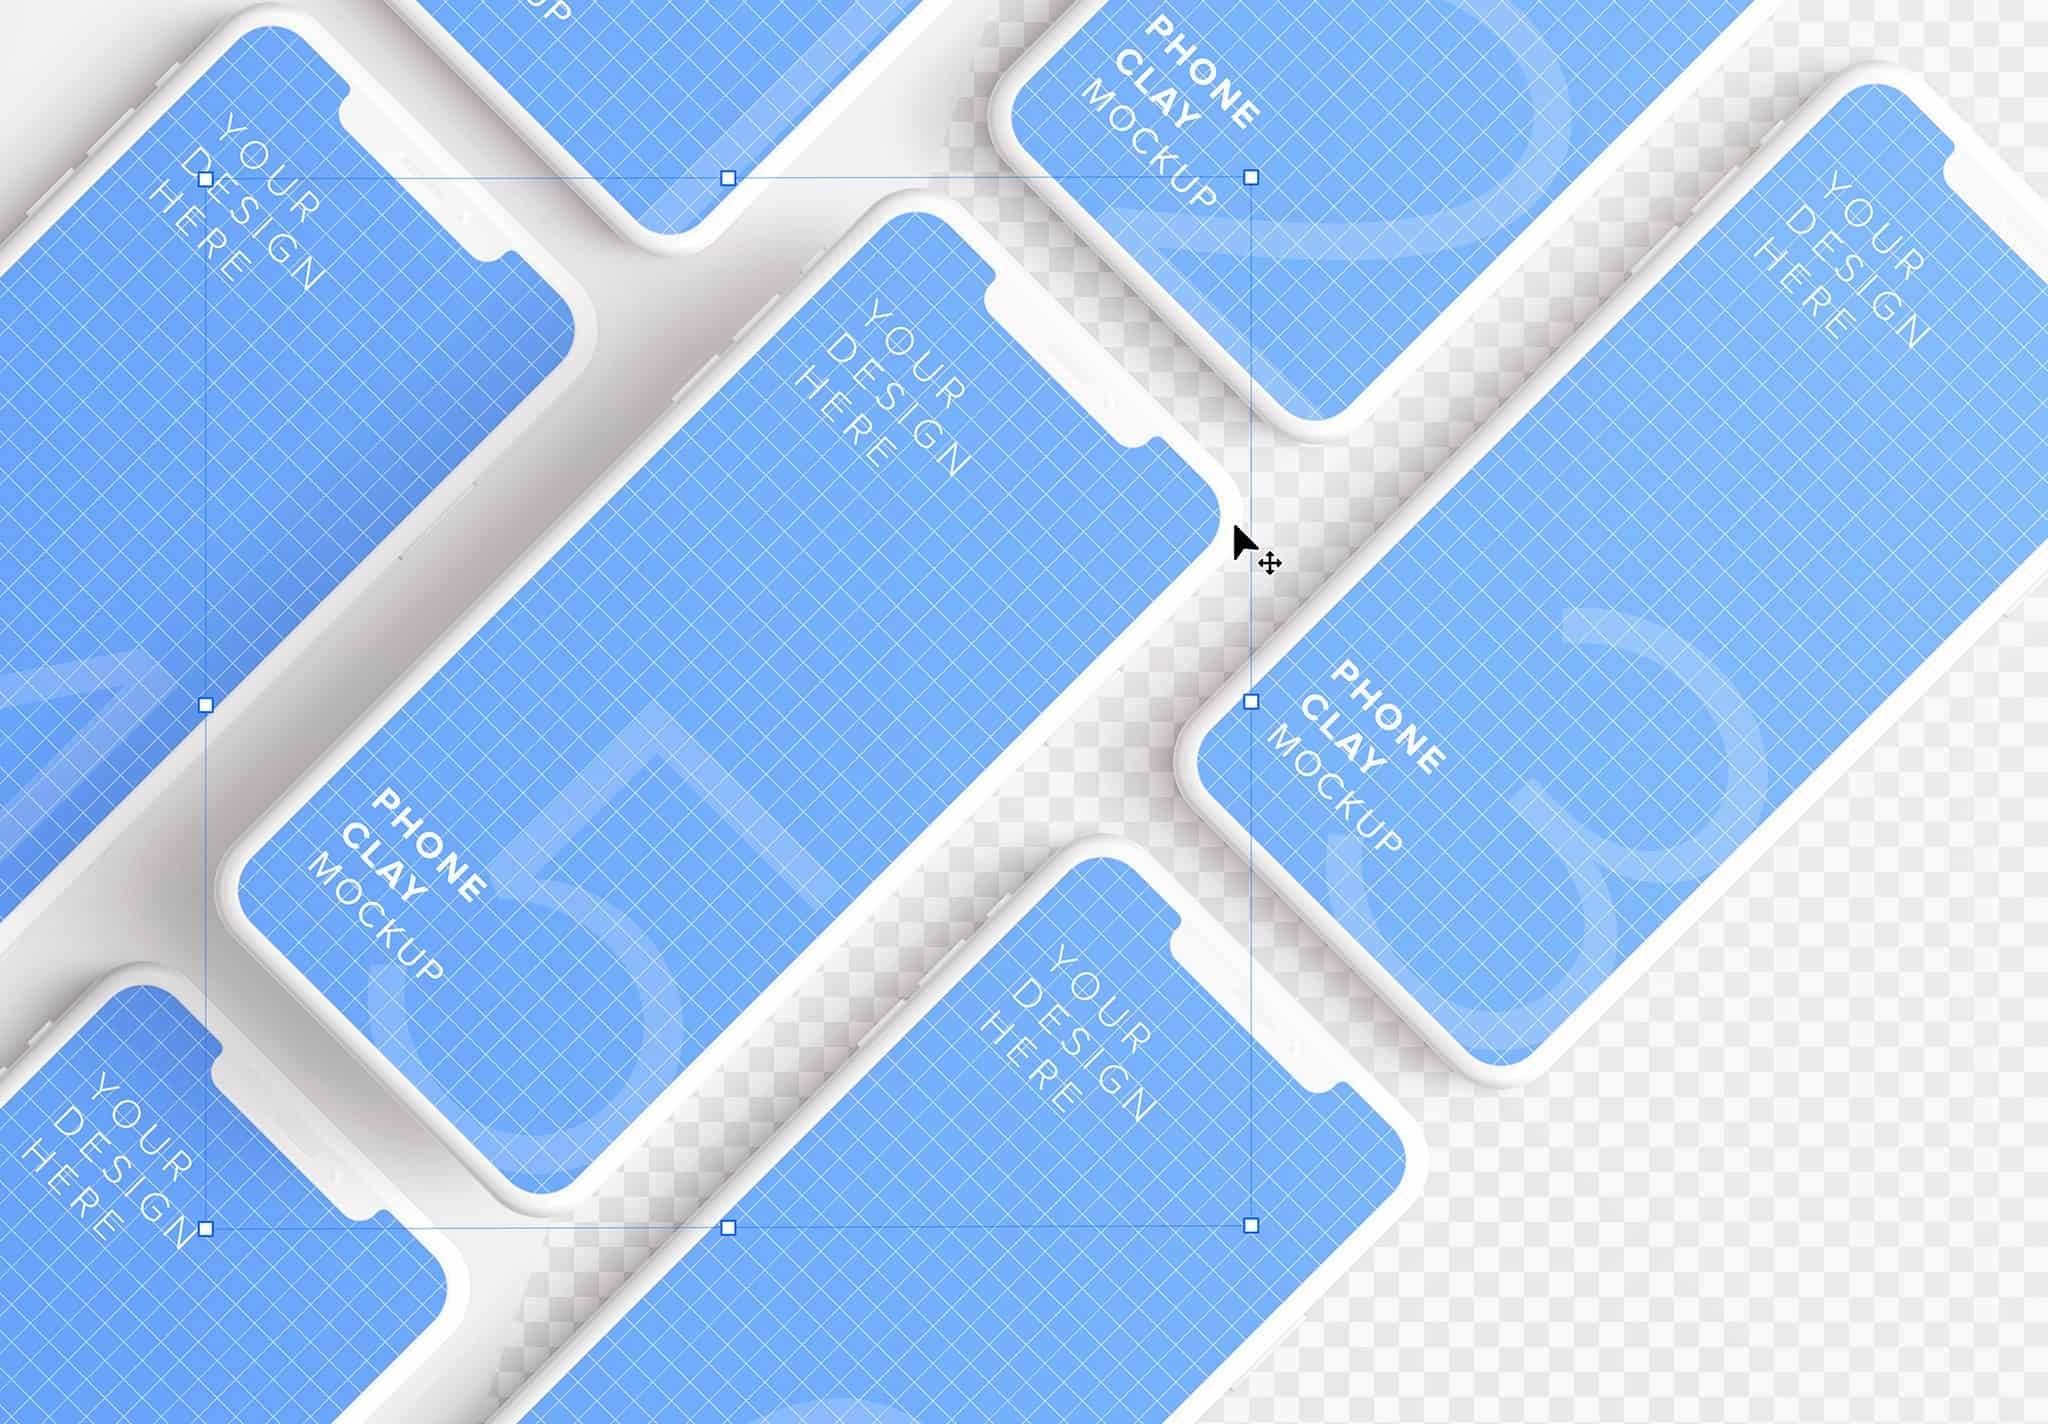 iphone smartphone clay layout 5 mockup image01